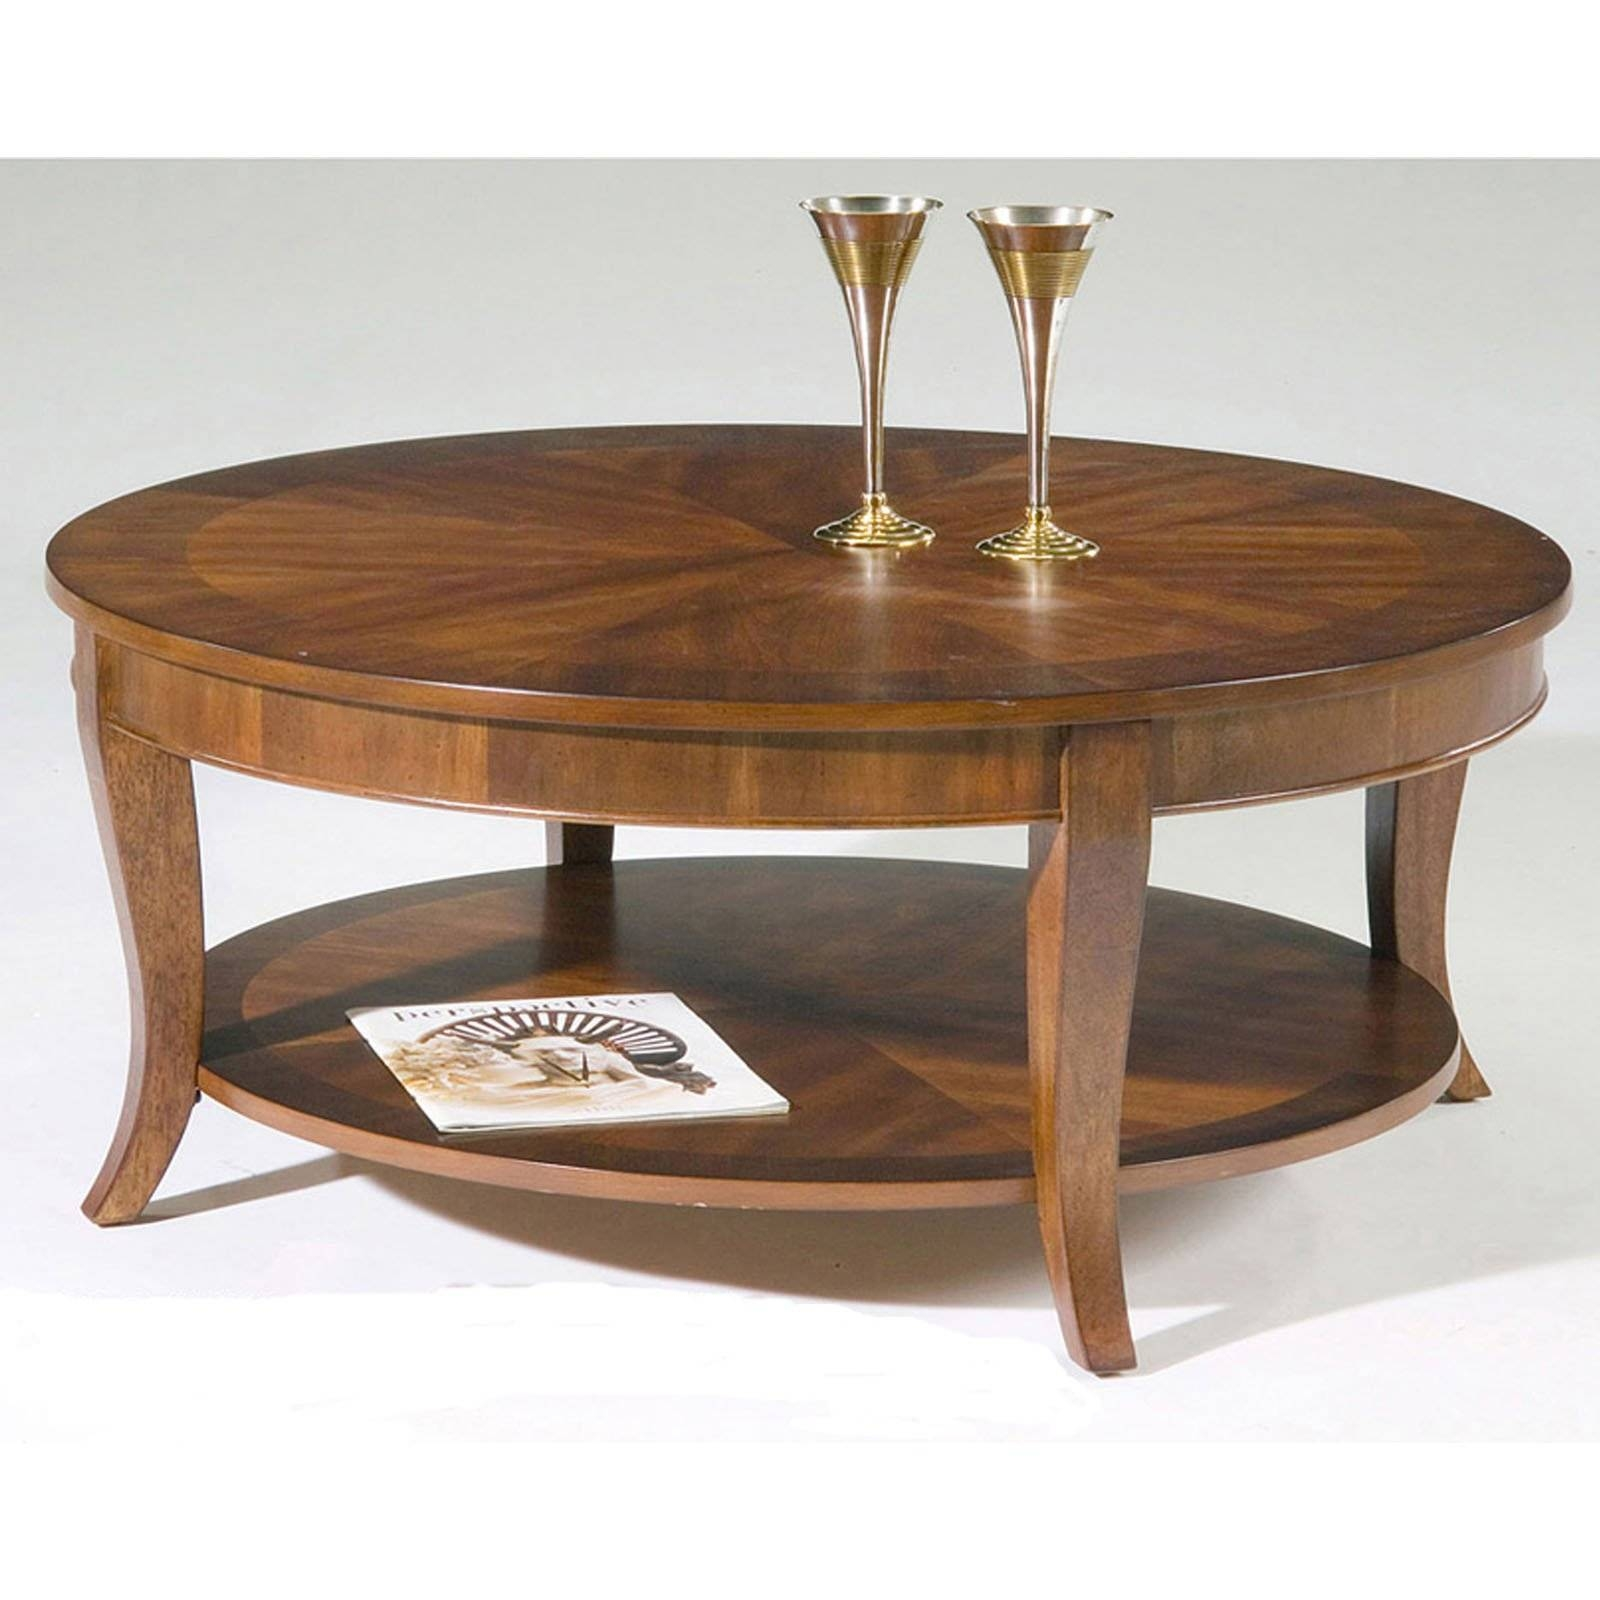 2017 Latest Half Circle Coffee Tables